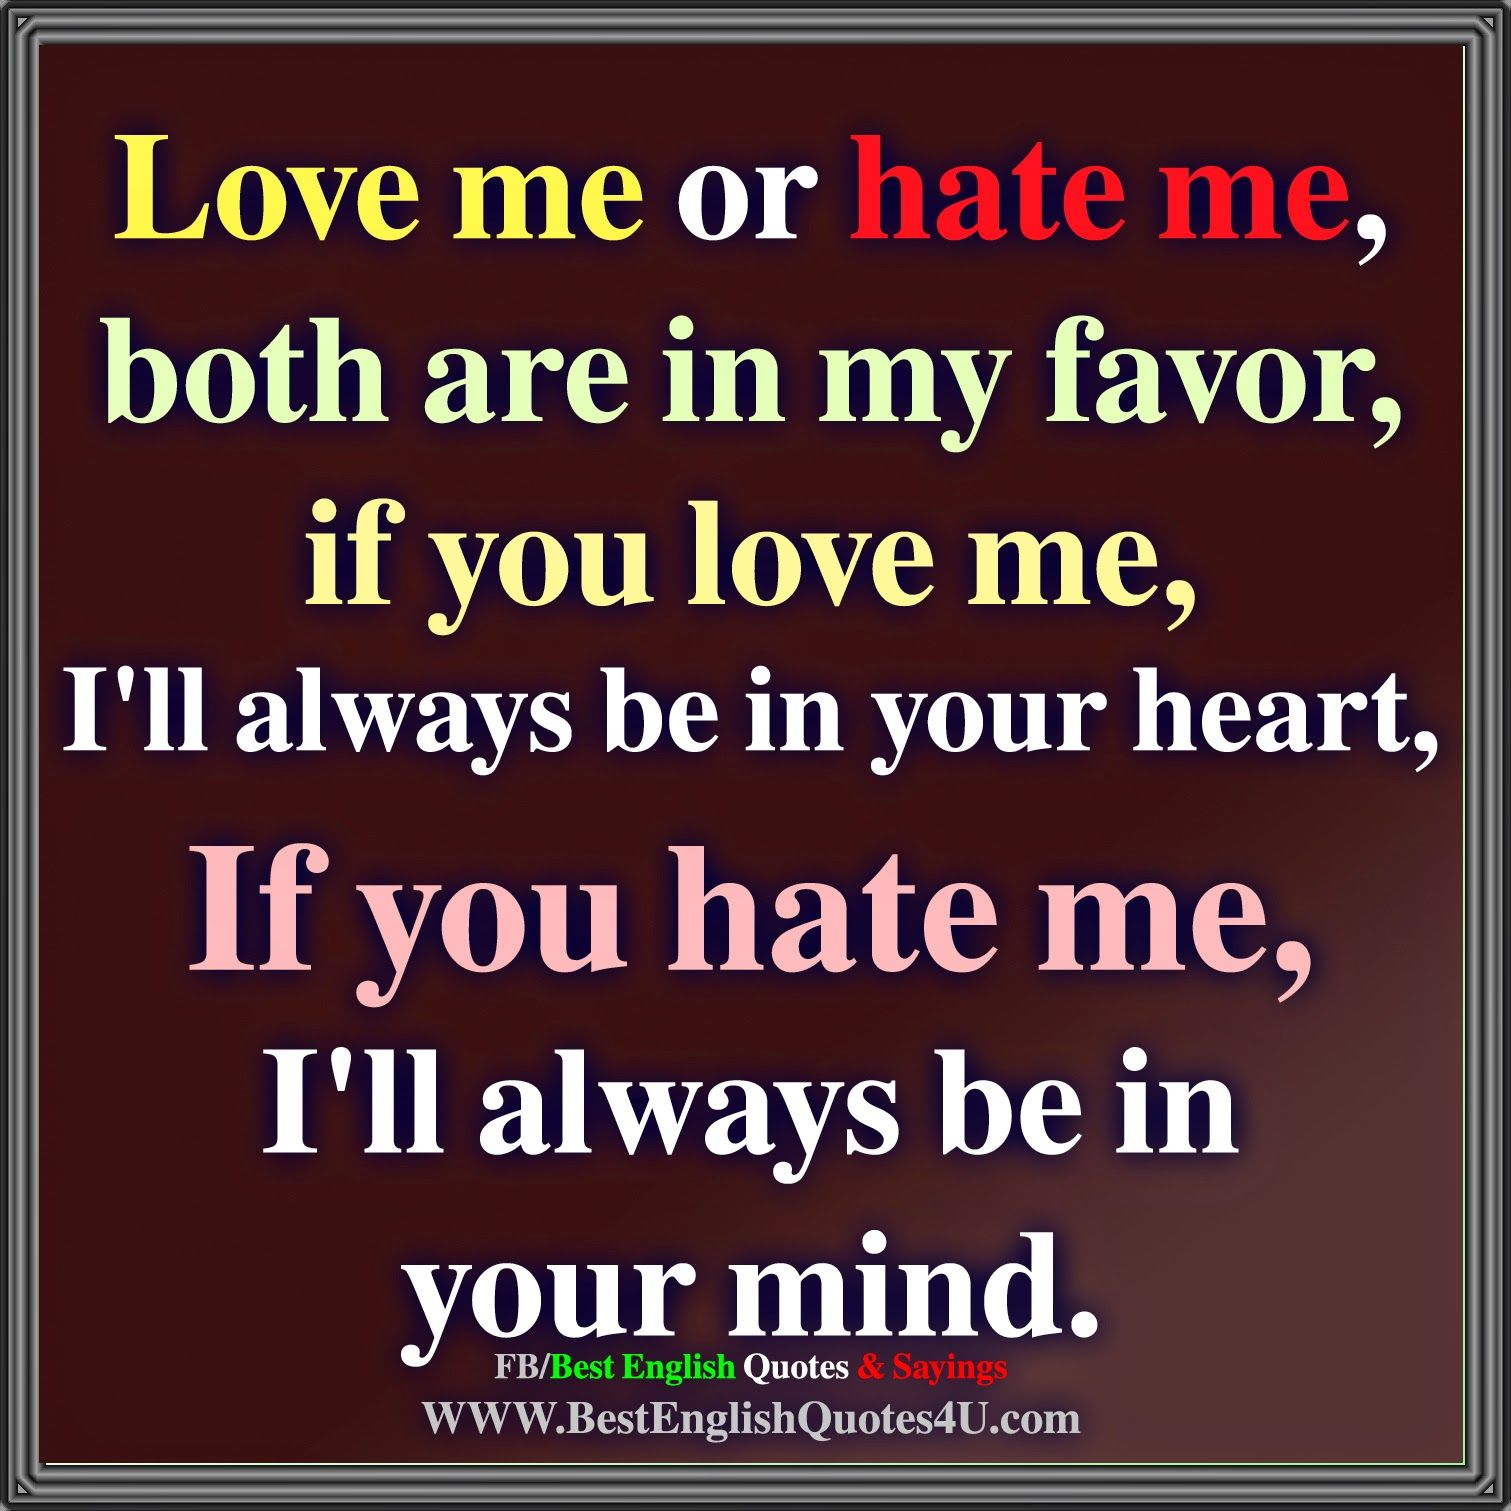 Quotes Against Love In English: Best'English'Quotes'&'Sayings - Love Quotes